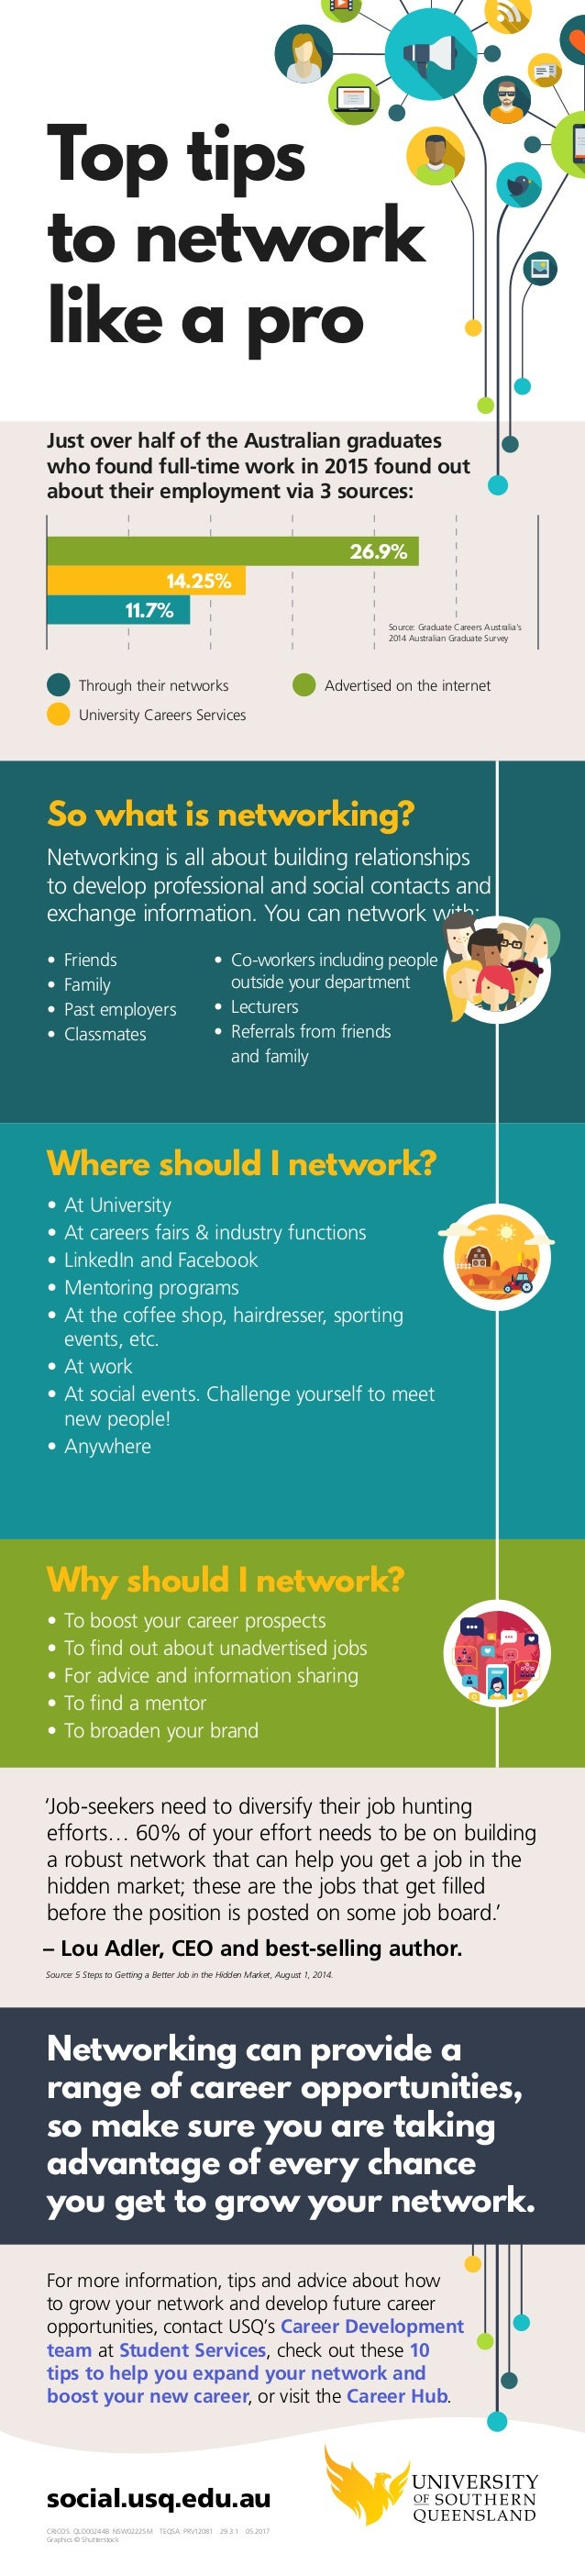 Top tips to network like a pro 26.9% 14.25% 11.7% 	 Through their networks	 	 Advertised on the internet 	 University Care...